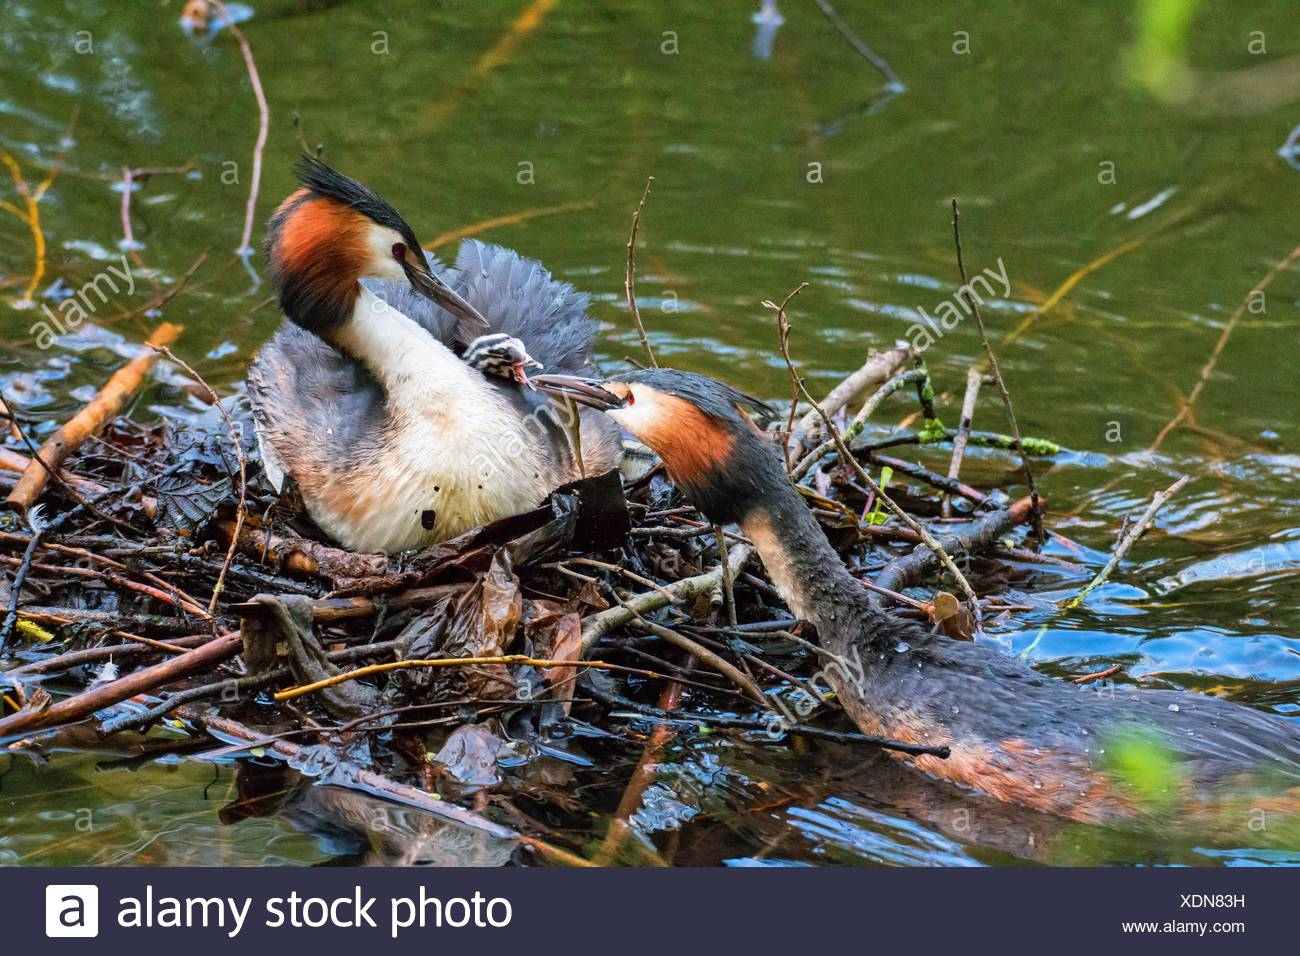 great crested grebe (Podiceps cristatus), great crested gebe family at the nest, Germany - Stock Image